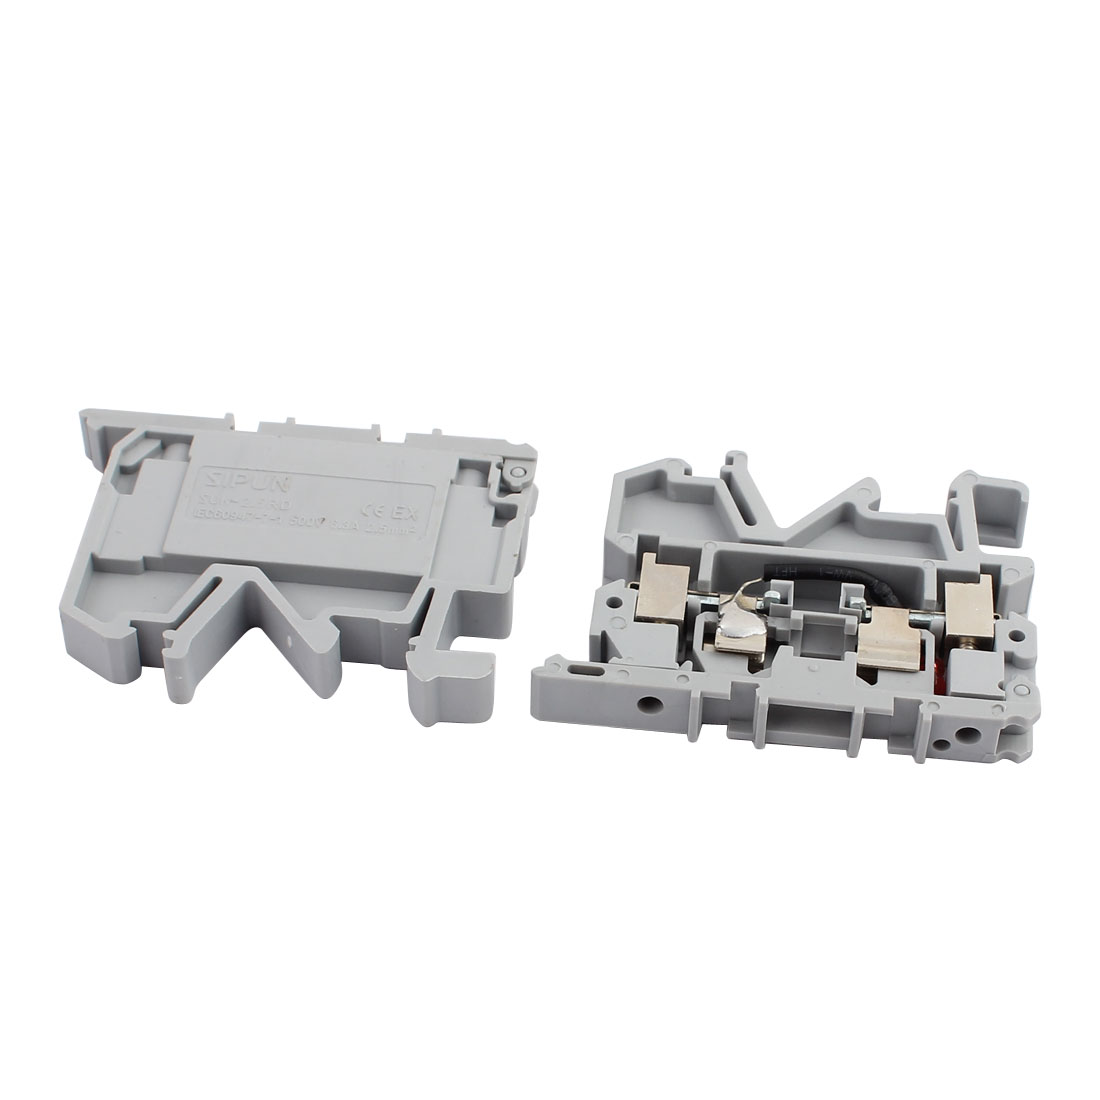 2pcs SUK-2.5RD/X 500V 6.3A Rail Mount 2.5mm2 Cable Fuse Type Terminal Blocks Gray